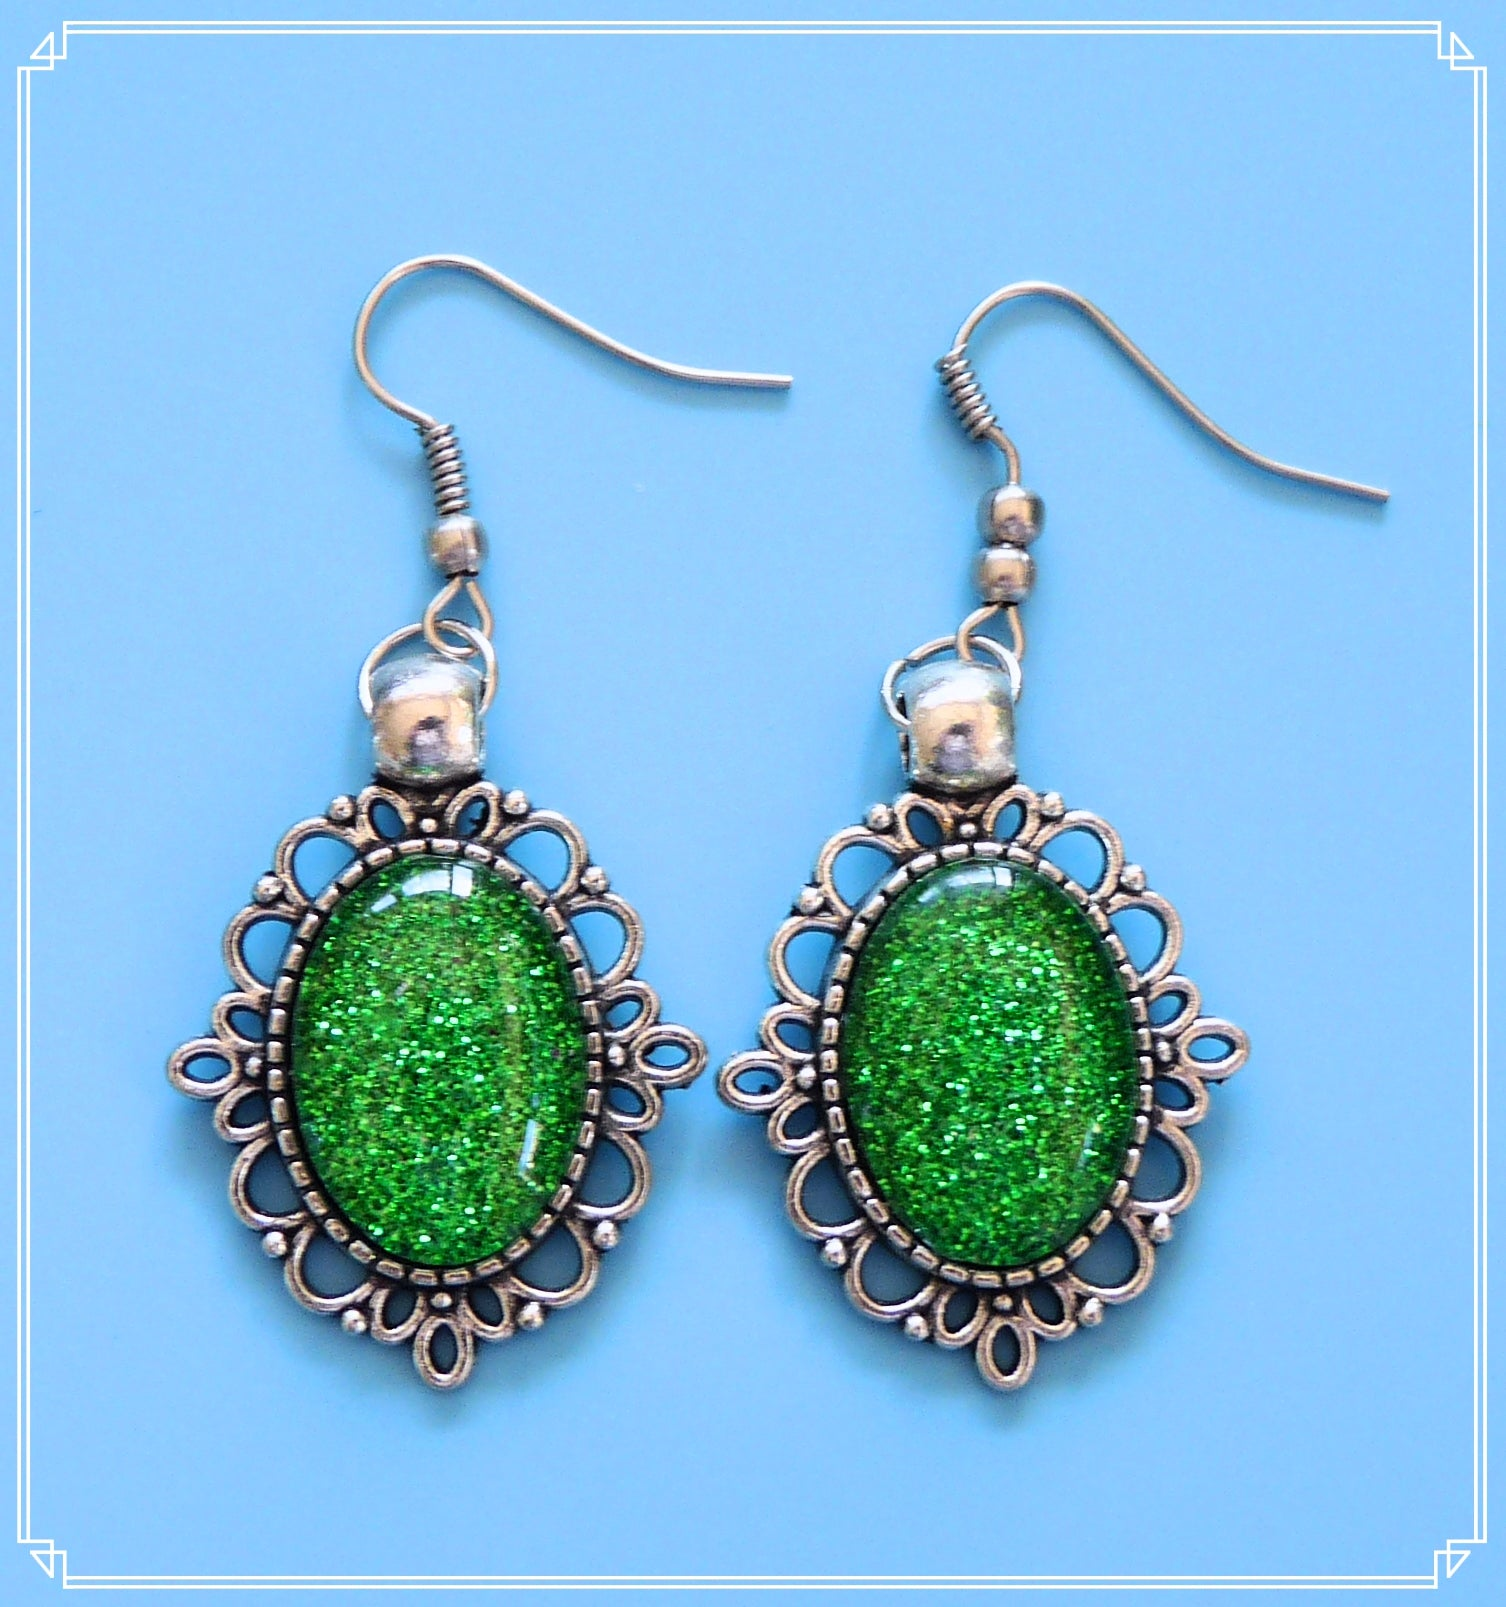 The green glitter drop earrings in silver setting are part of my Colour Your World collection.